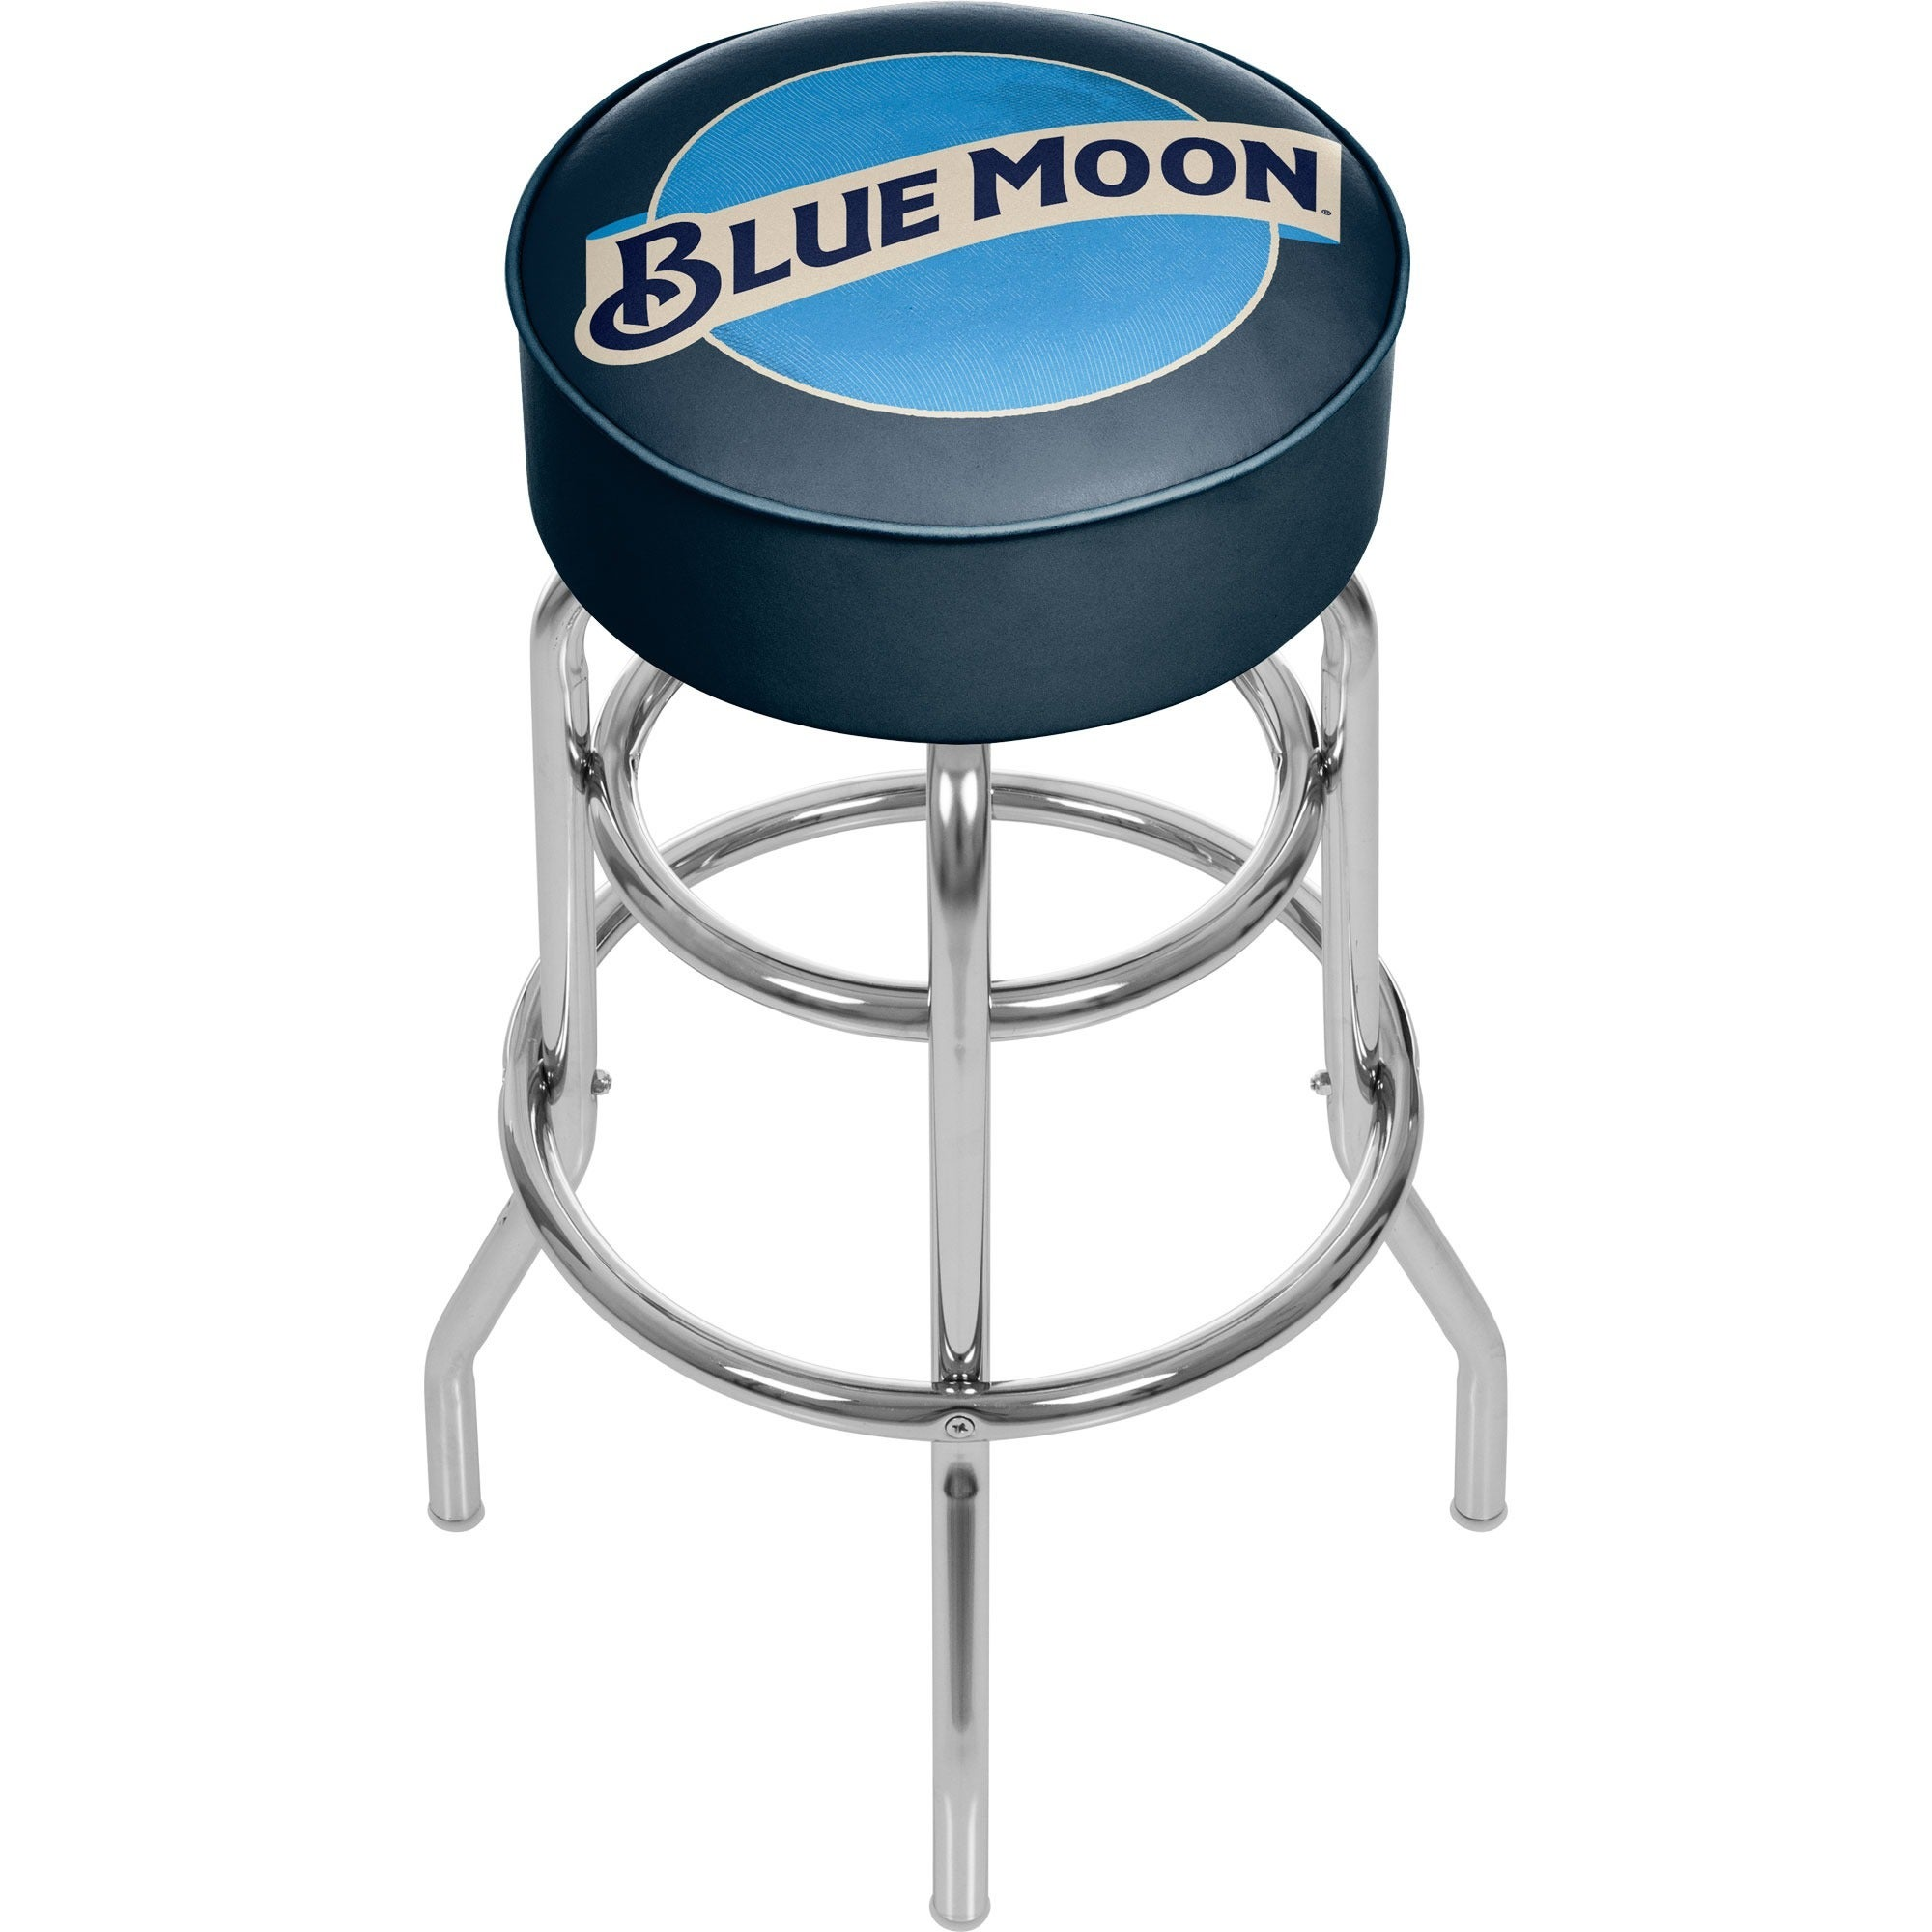 Blue moon chair padded swivel chrome bar stool game room man cave accessories